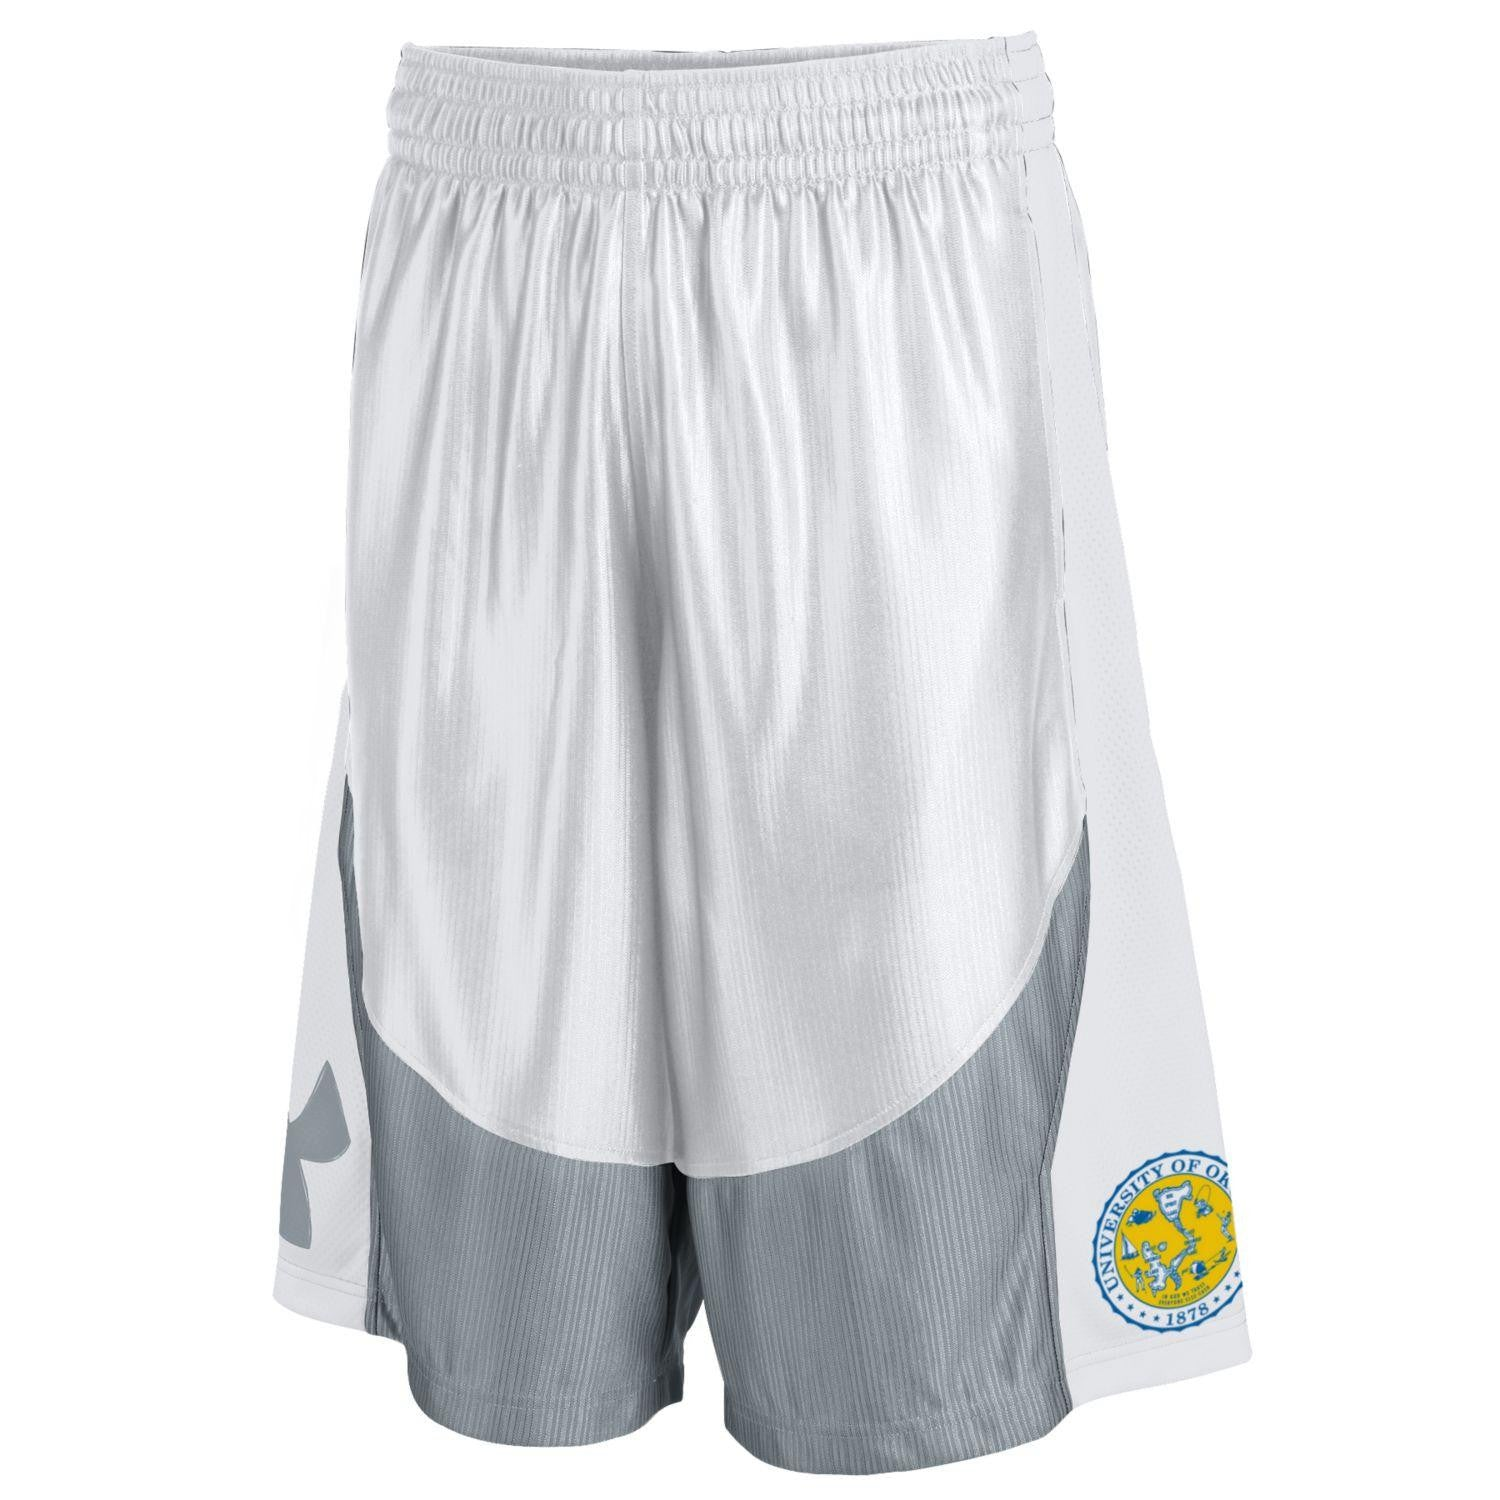 University of Okoboji Basketball Team Shorts - White